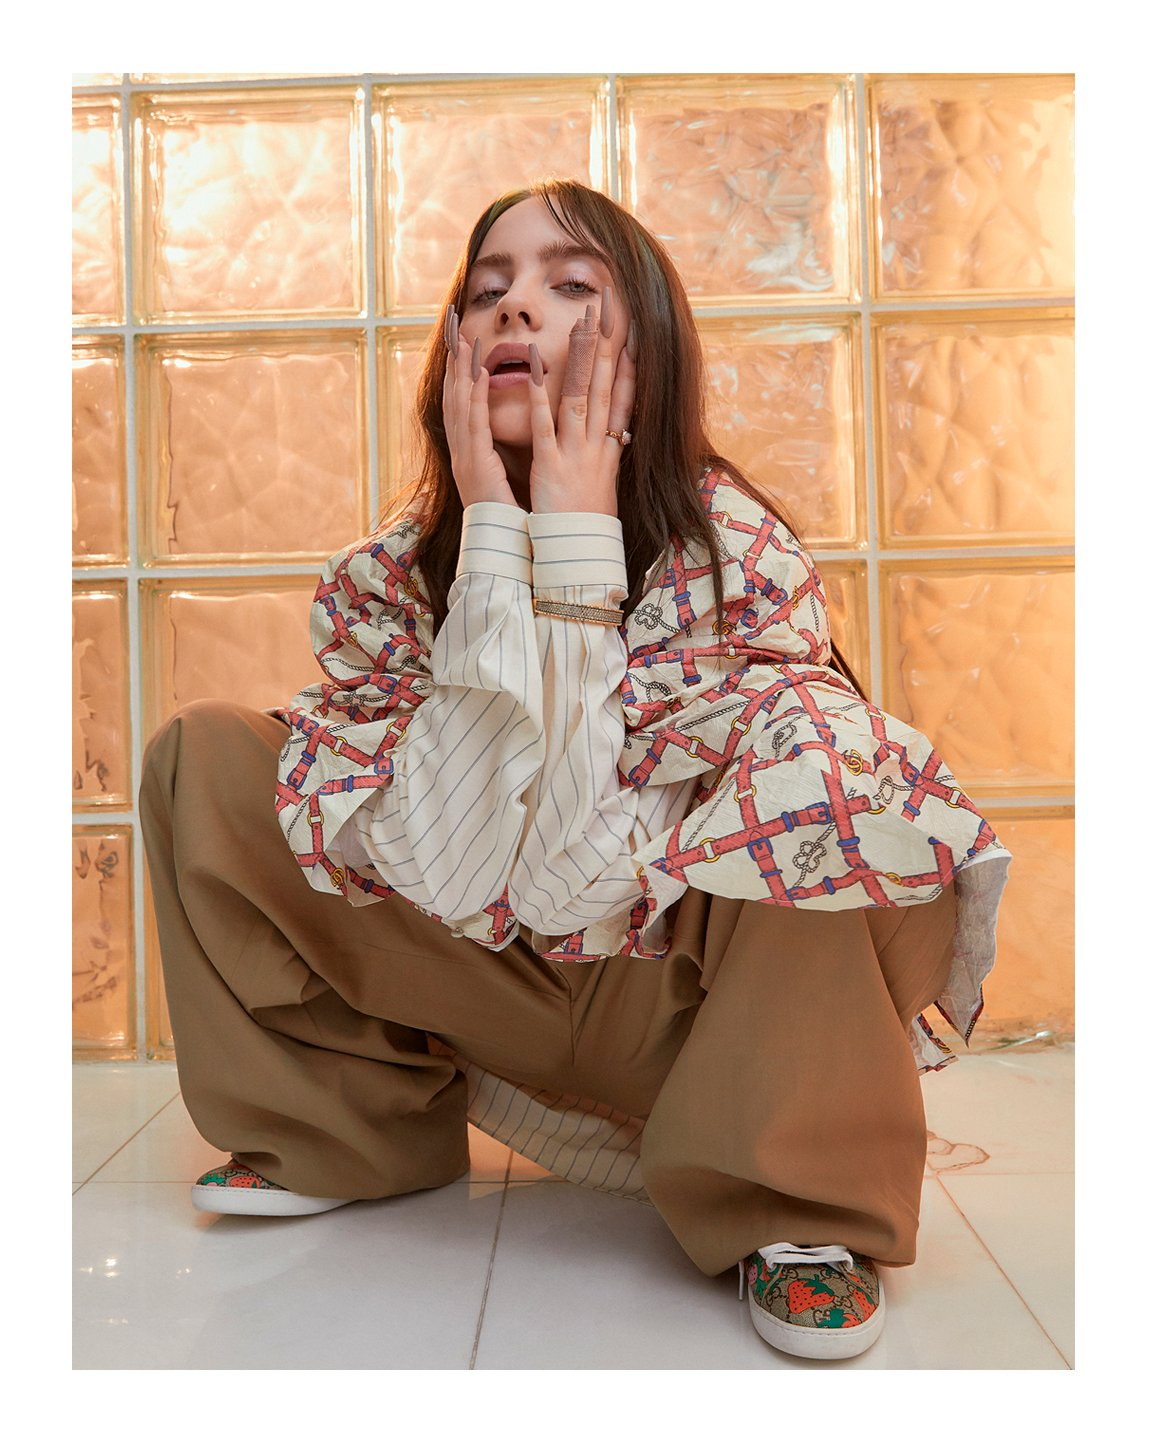 .@billieeilish features in #GraziaChina 's September issue wearing an oversize printed shirt, wool pants and #GucciAce sneakers from #GucciFW19 by #AlessandroMichele #GucciEditorials Photography by: #JohnJayDavison Styling by: #DaniellehHawkins https://t.co/HEFmhcDCM3